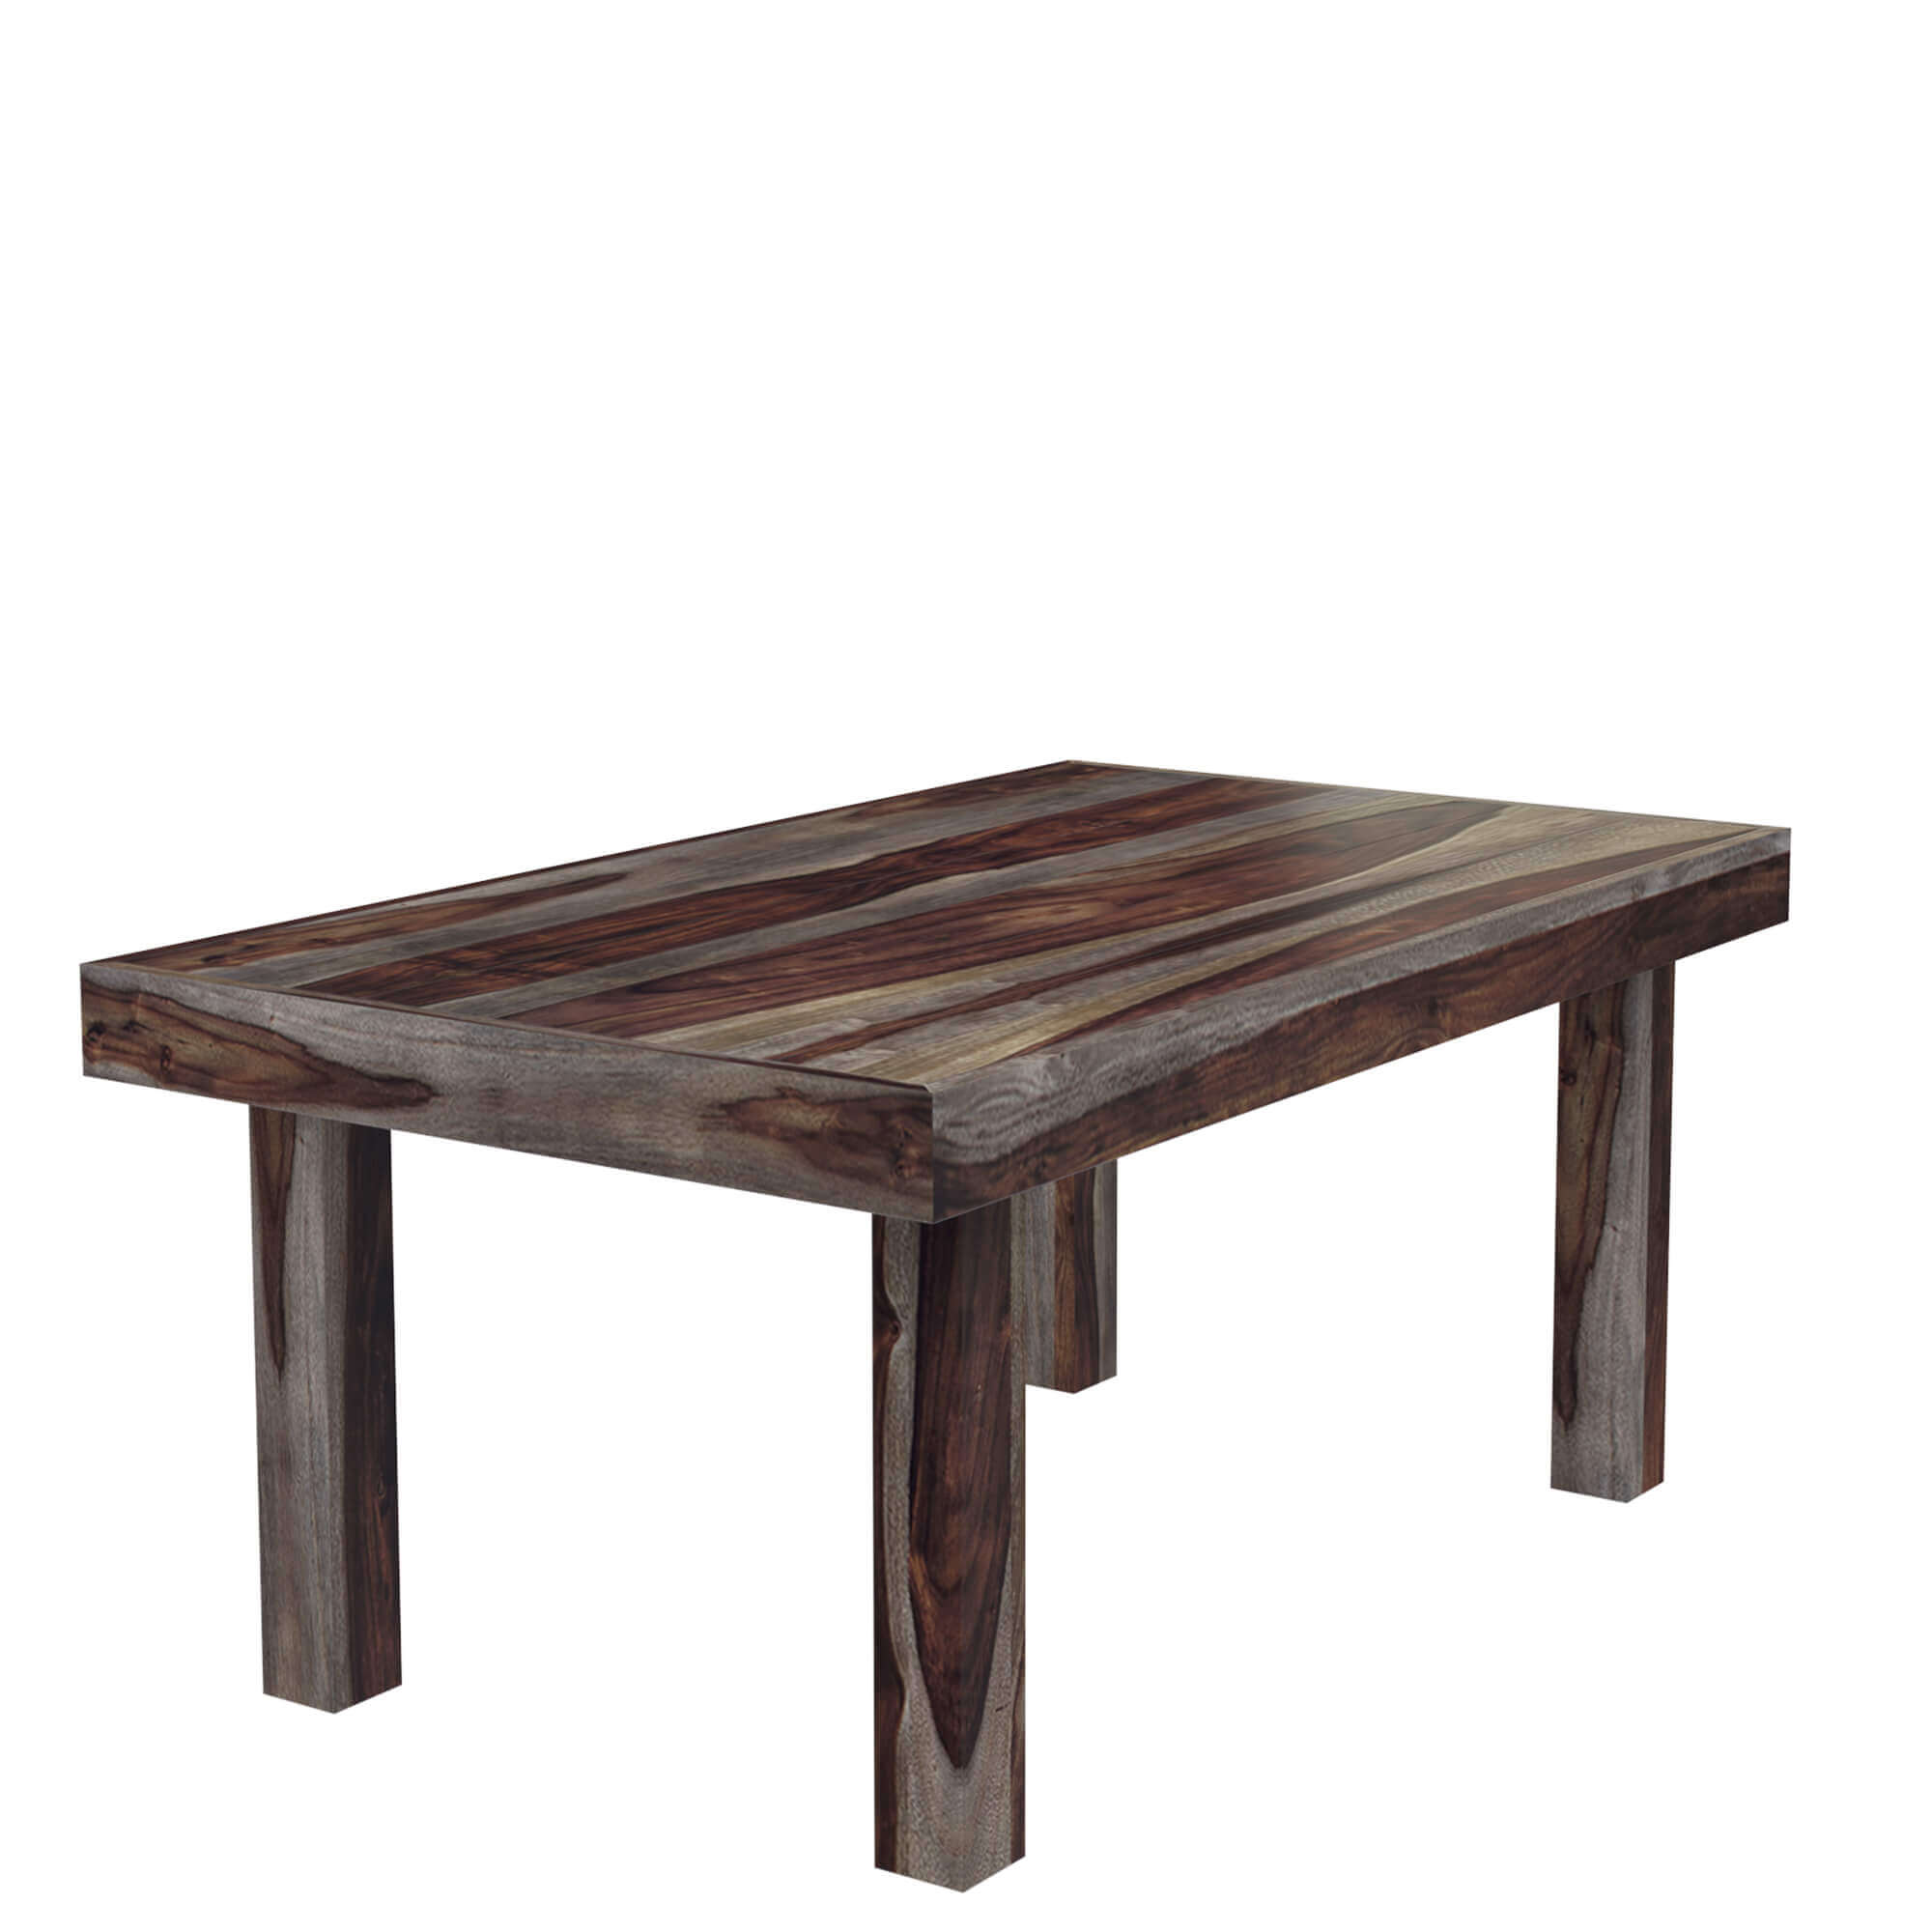 Frisco modern solid wood rectangular rustic dining room table for Furniture dining table